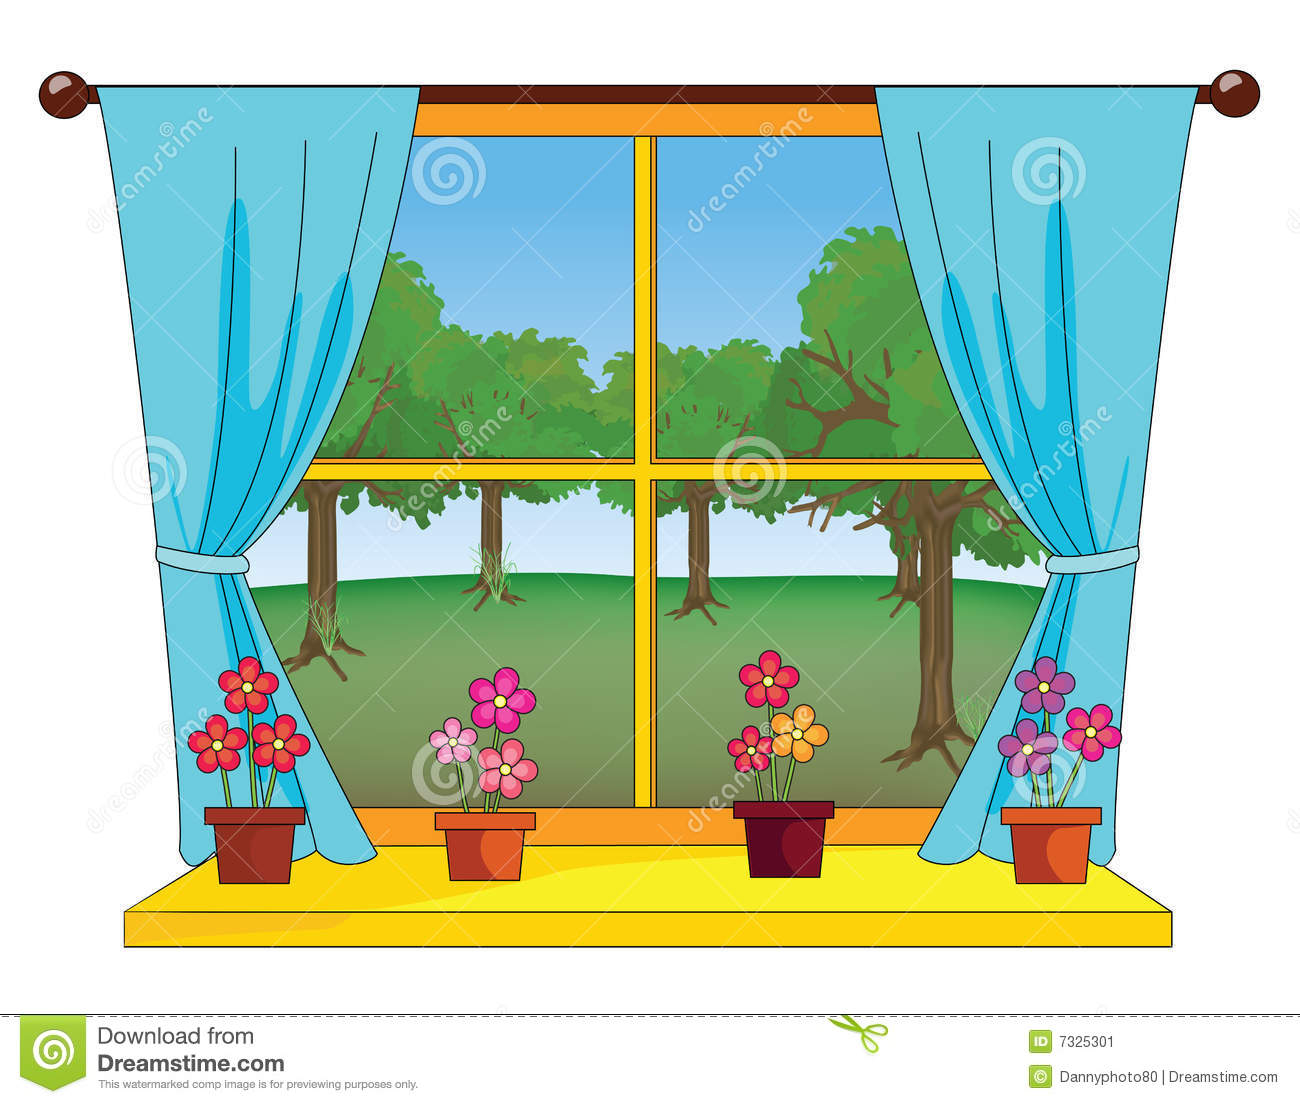 Window clipart clipart panda free clipart images for Window design clipart